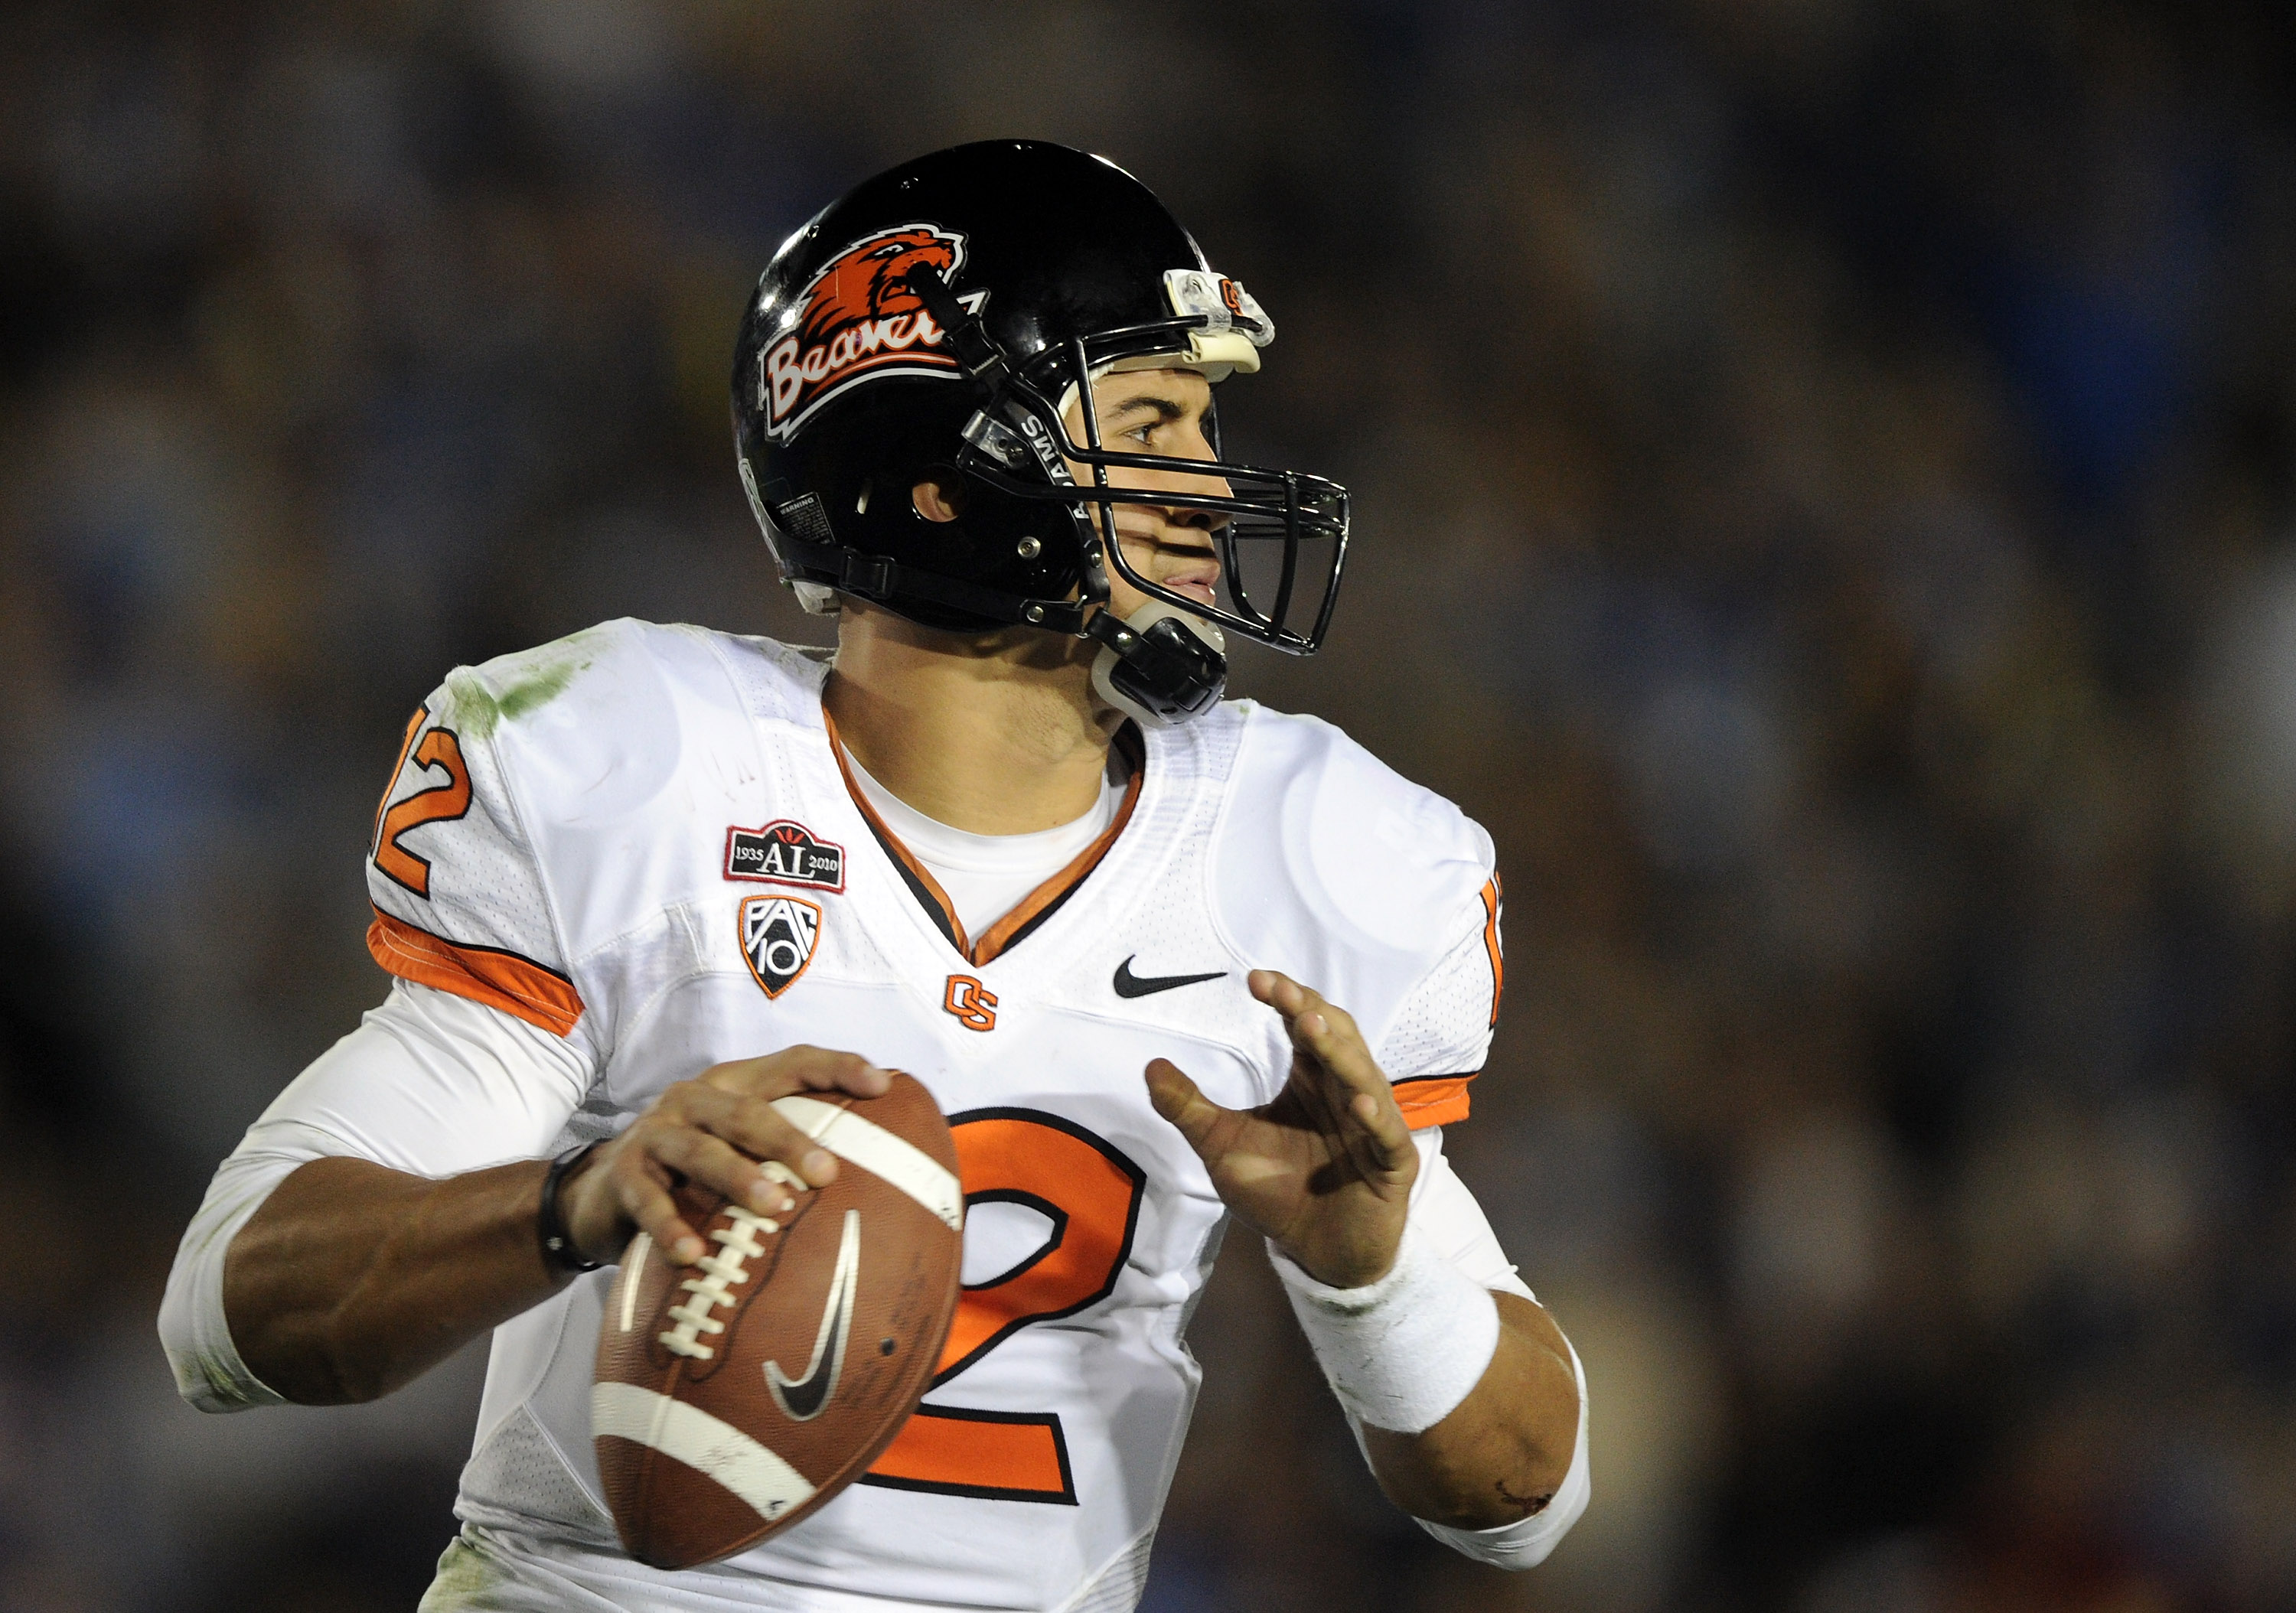 PASADENA, CA - NOVEMBER 06:  Ryan Katz #12 of the Oregon State Beavers looks to pass against the UCLA Bruins during the game at the Rose Bowl on November 6, 2010 in Pasadena, California.  (Photo by Harry How/Getty Images)